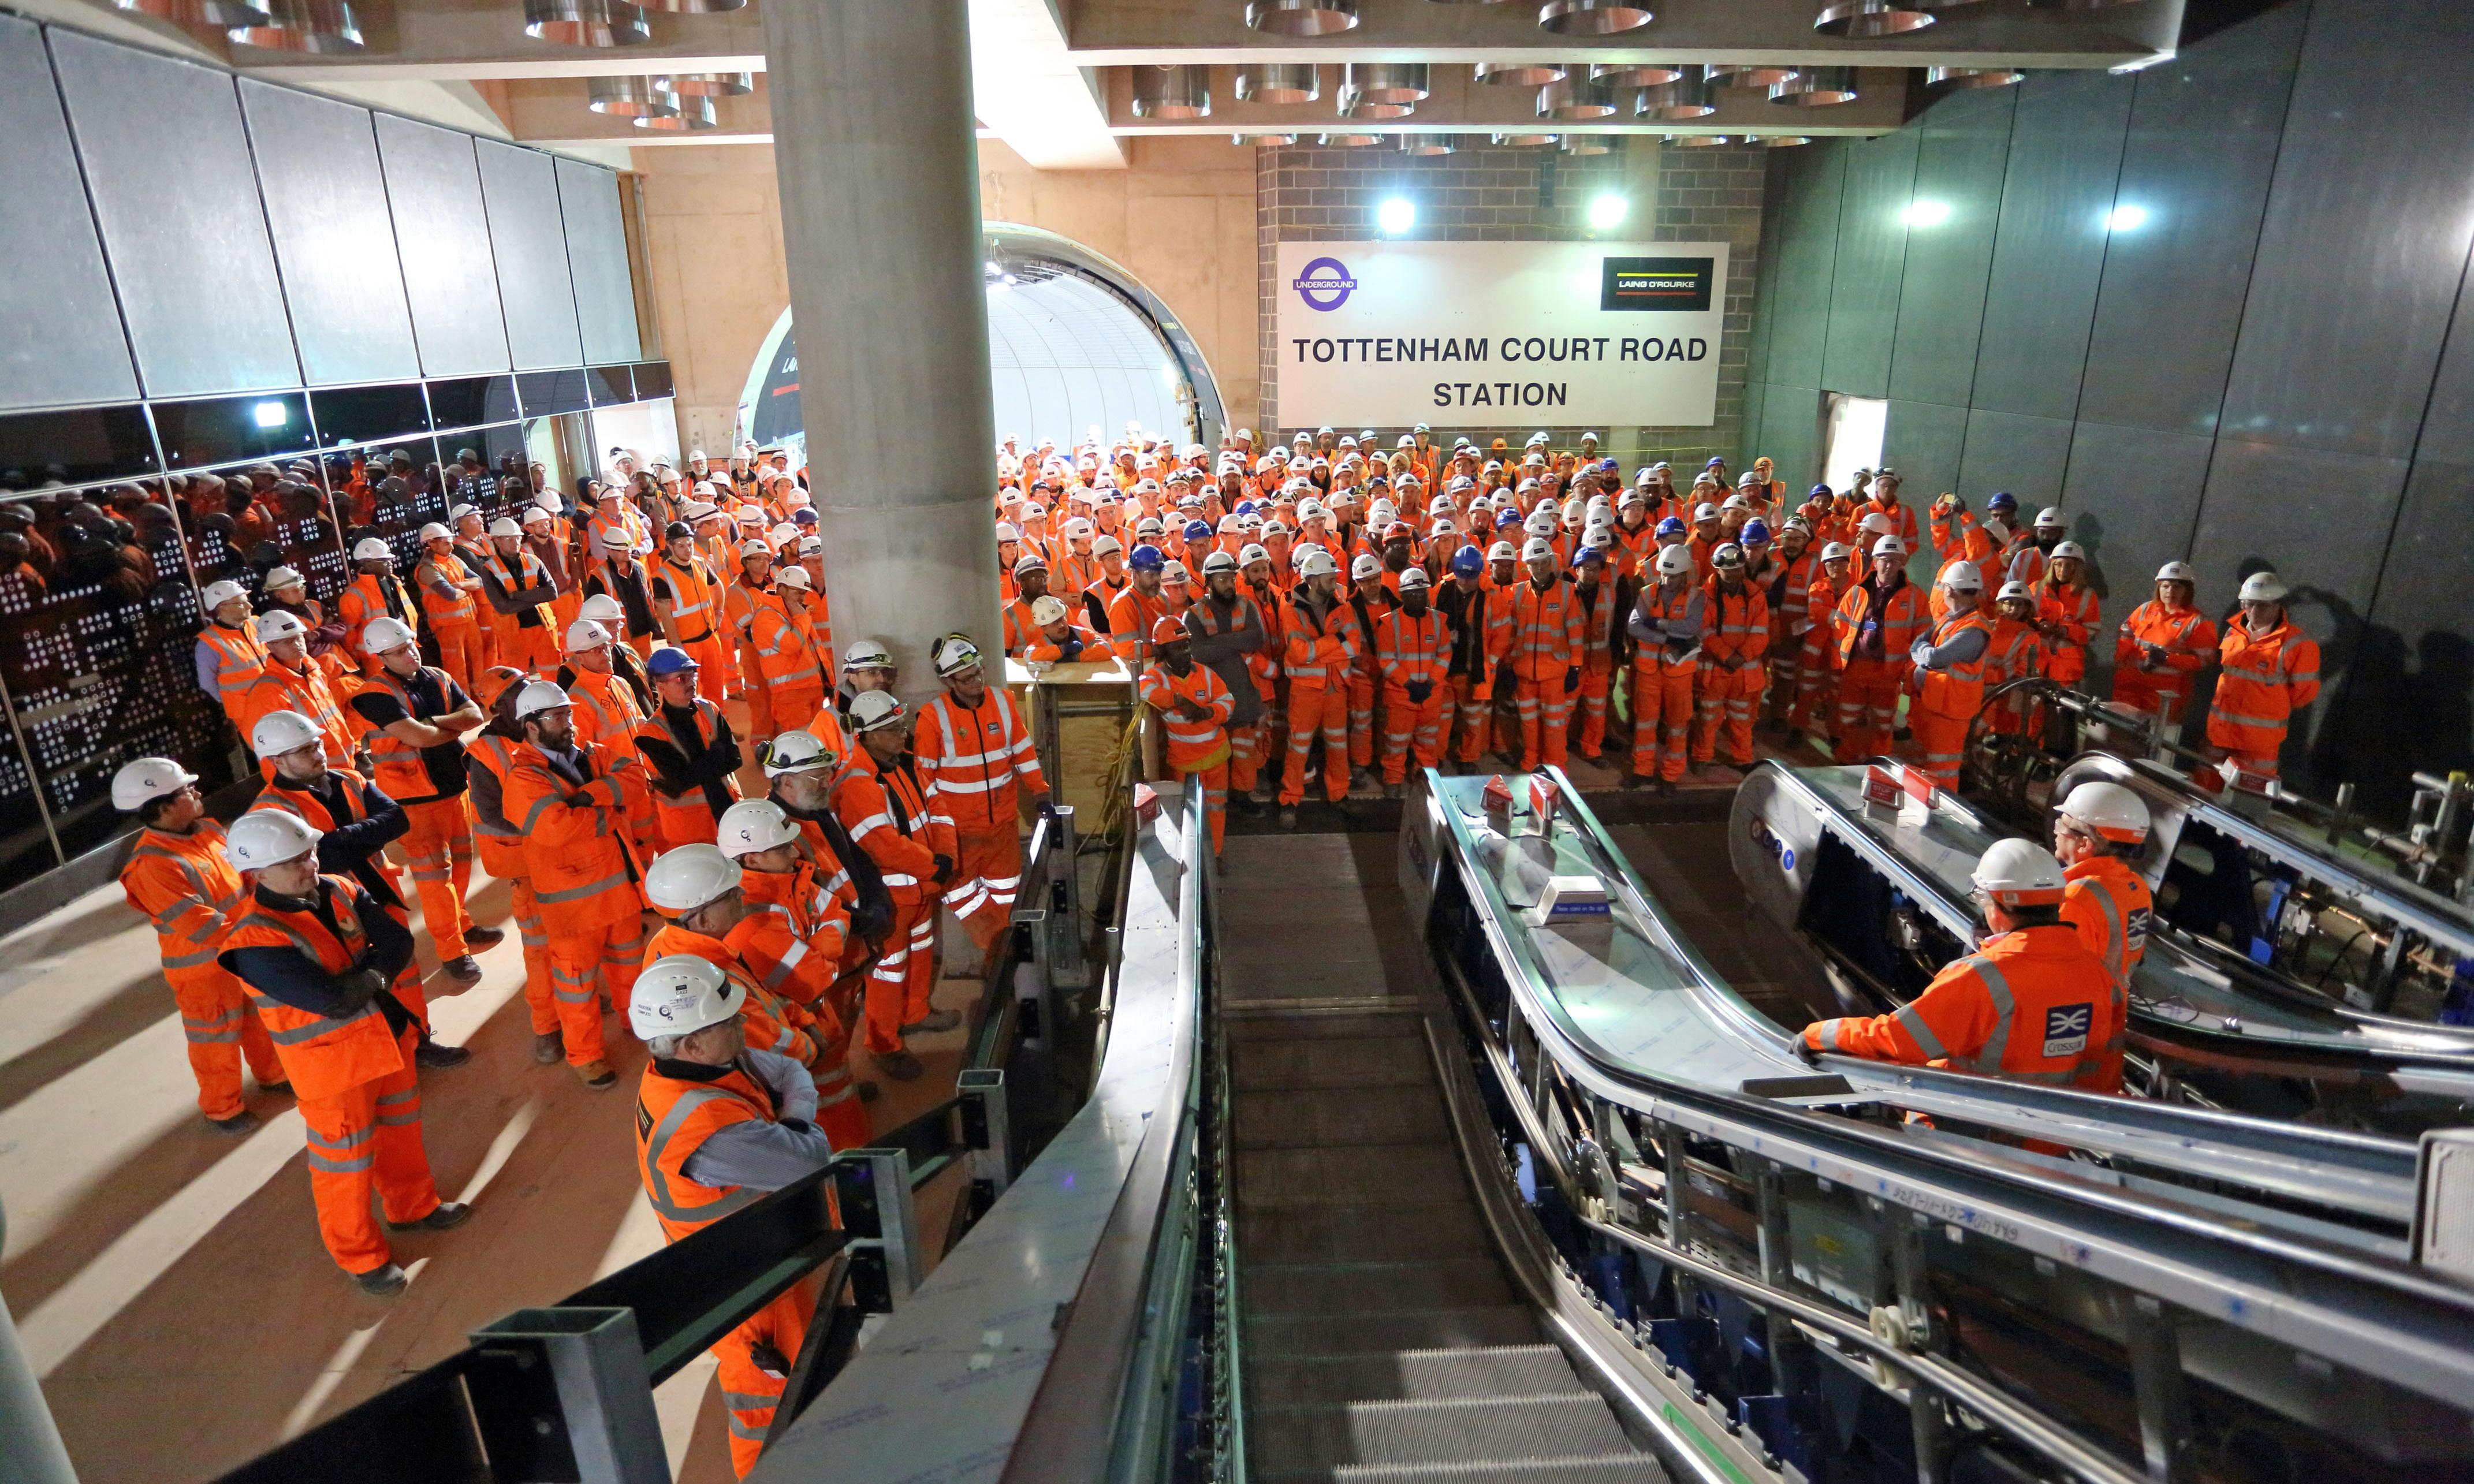 The Fifteen Billion Pound Railway review – digging into the Crossrail catastrophe